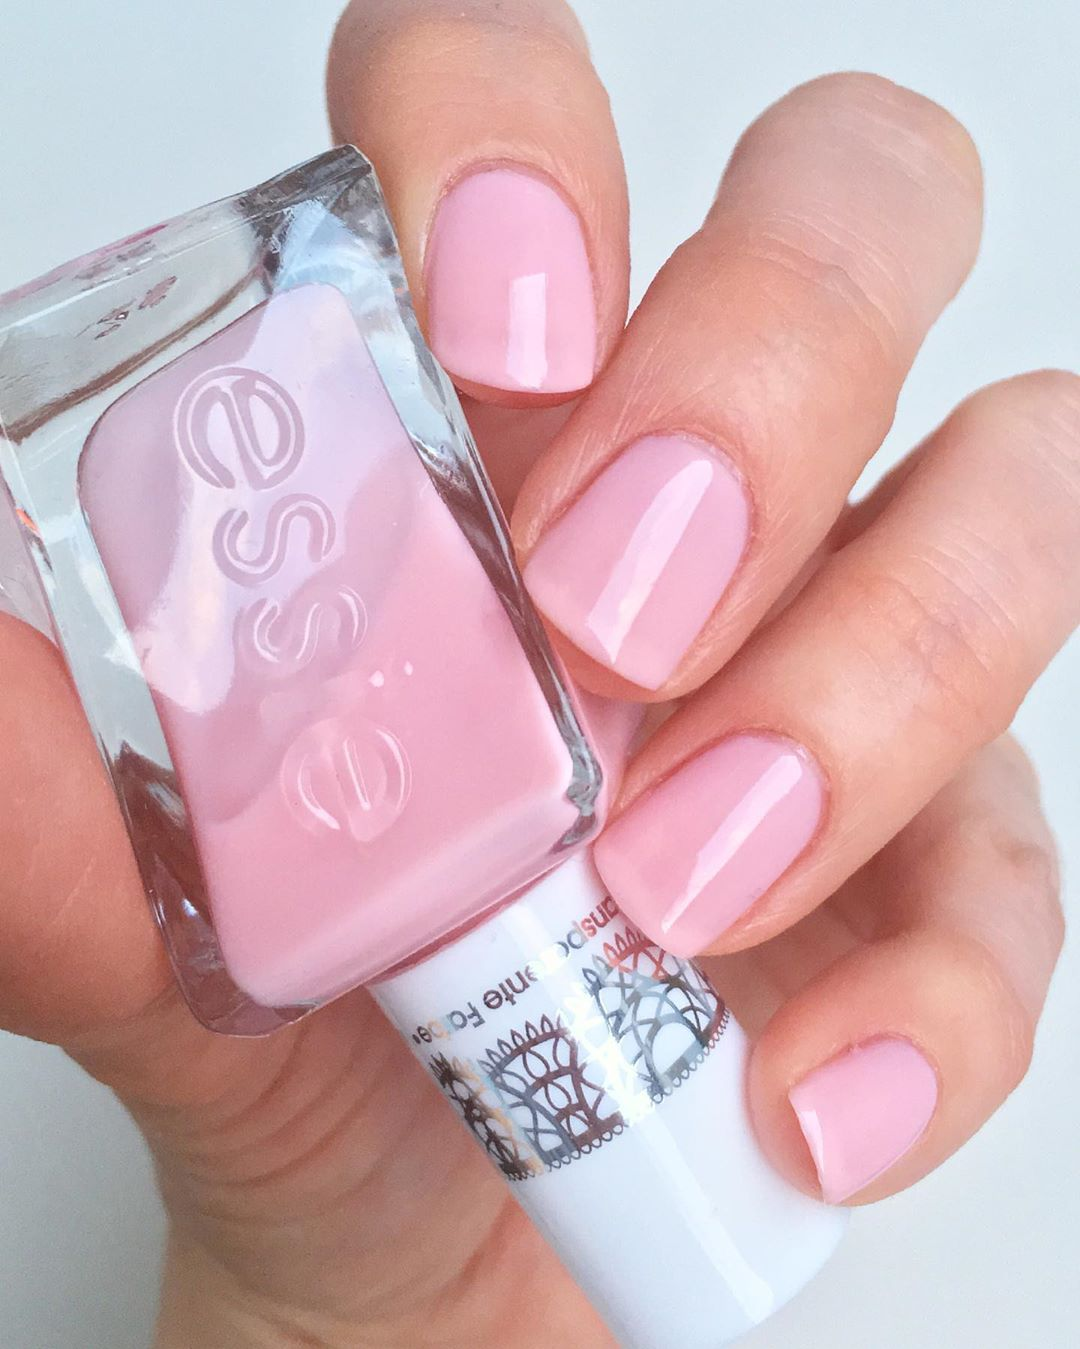 Thebeautysquares Emma Sanoo Instagramissa Essie Gel Couture Gossamer Garments From The Sheer Silhouettes Collection Essie Gel Couture Essie Gel Gel Couture